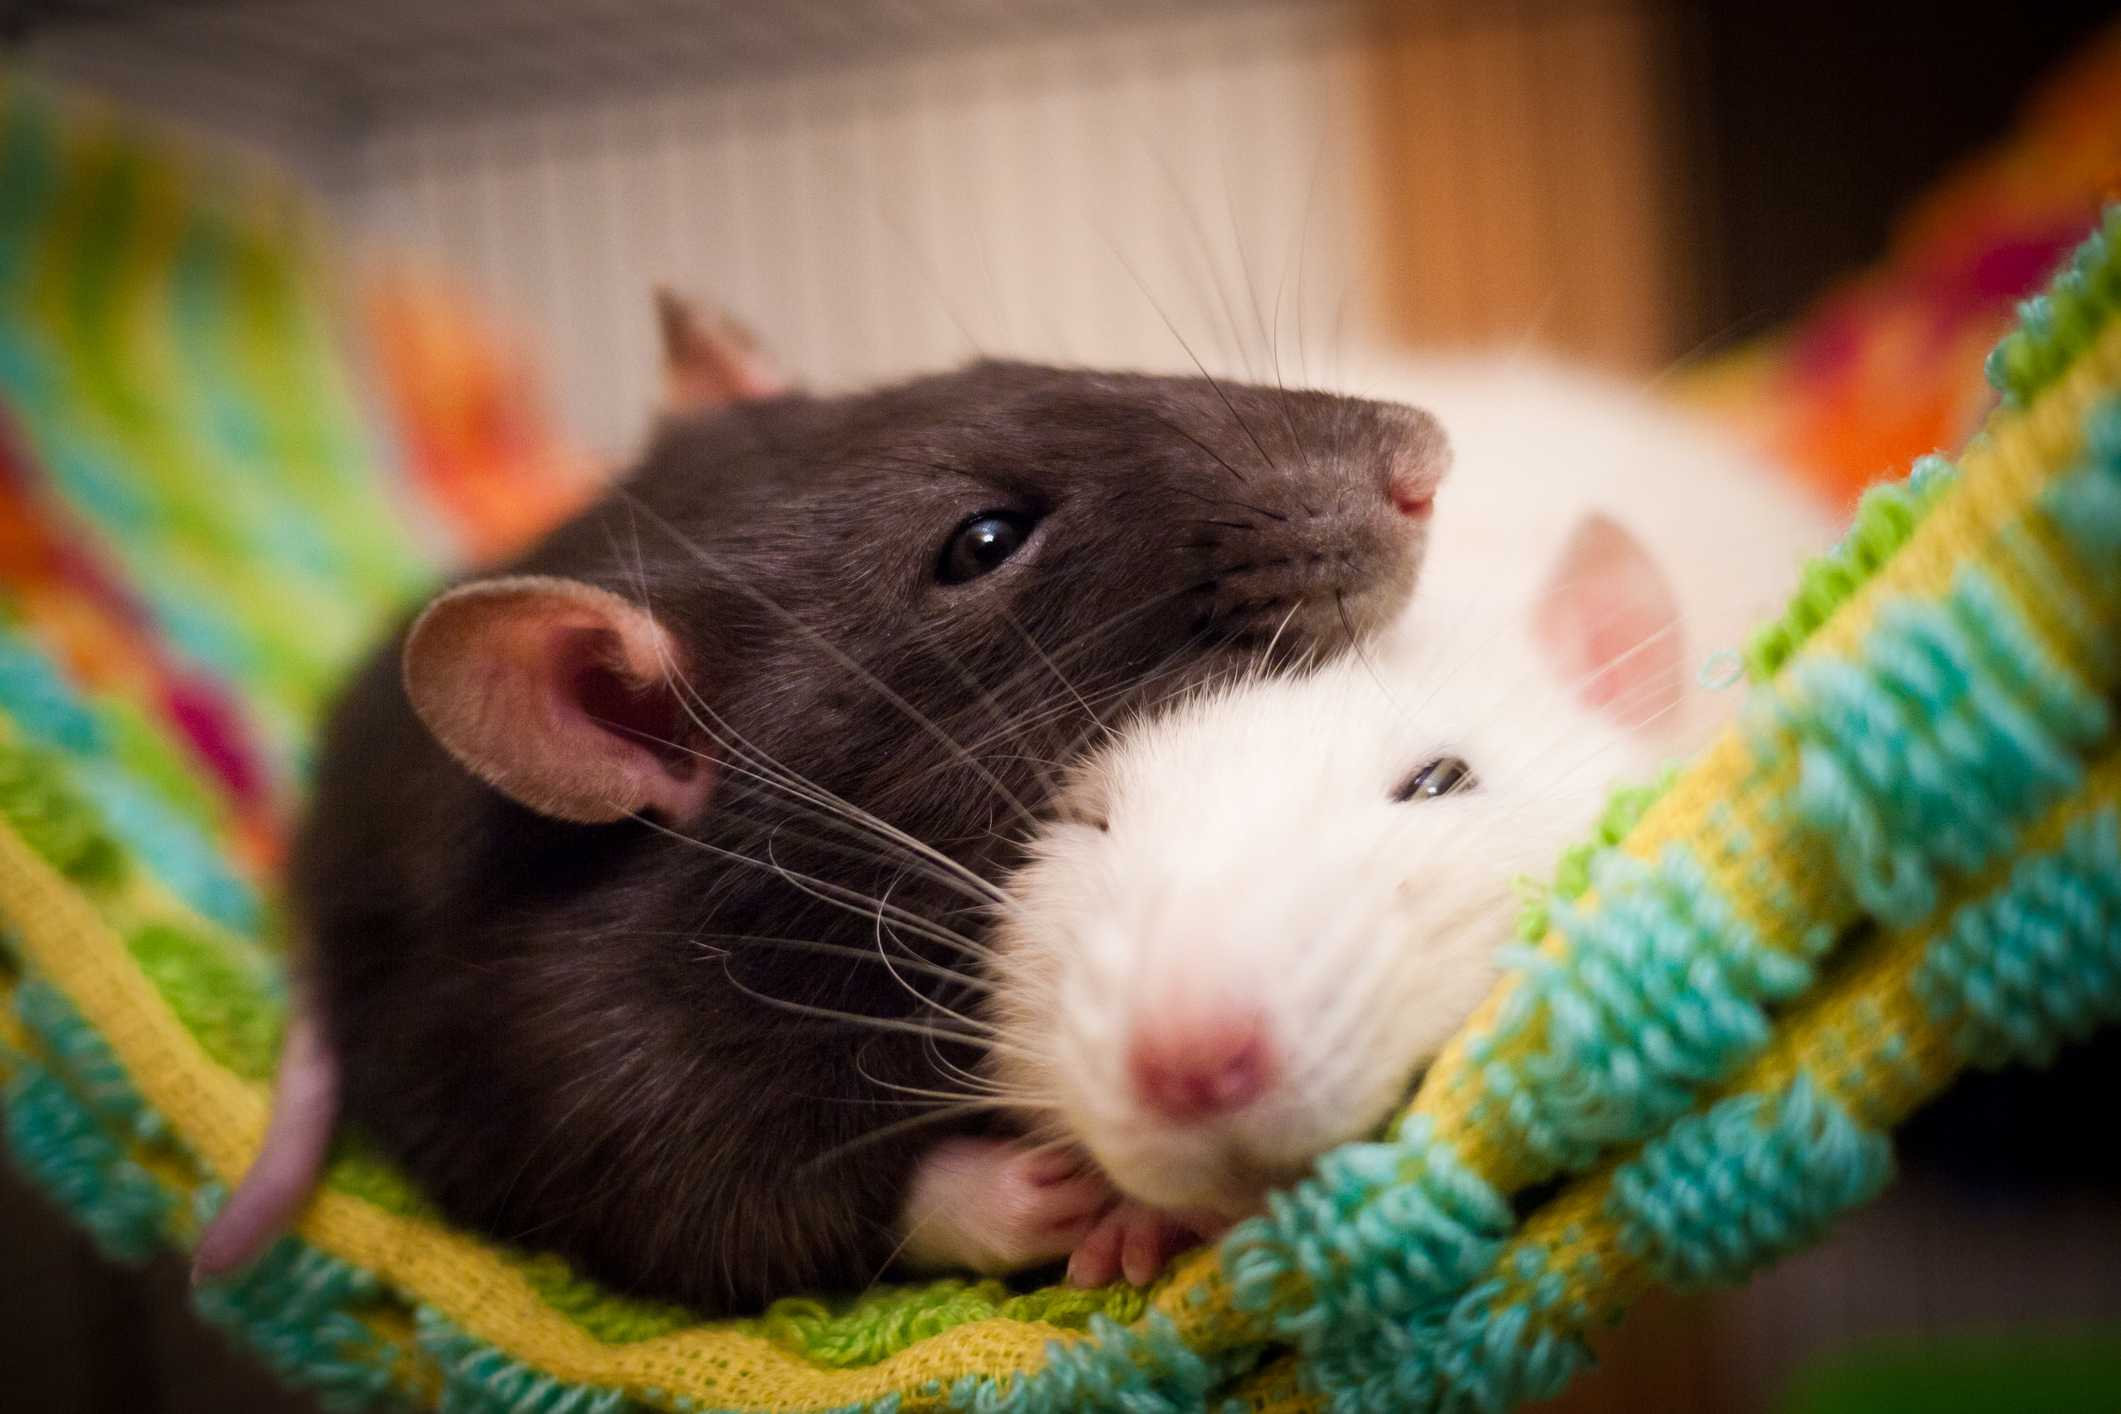 Two rate--one black and one white--resting on a blanket.